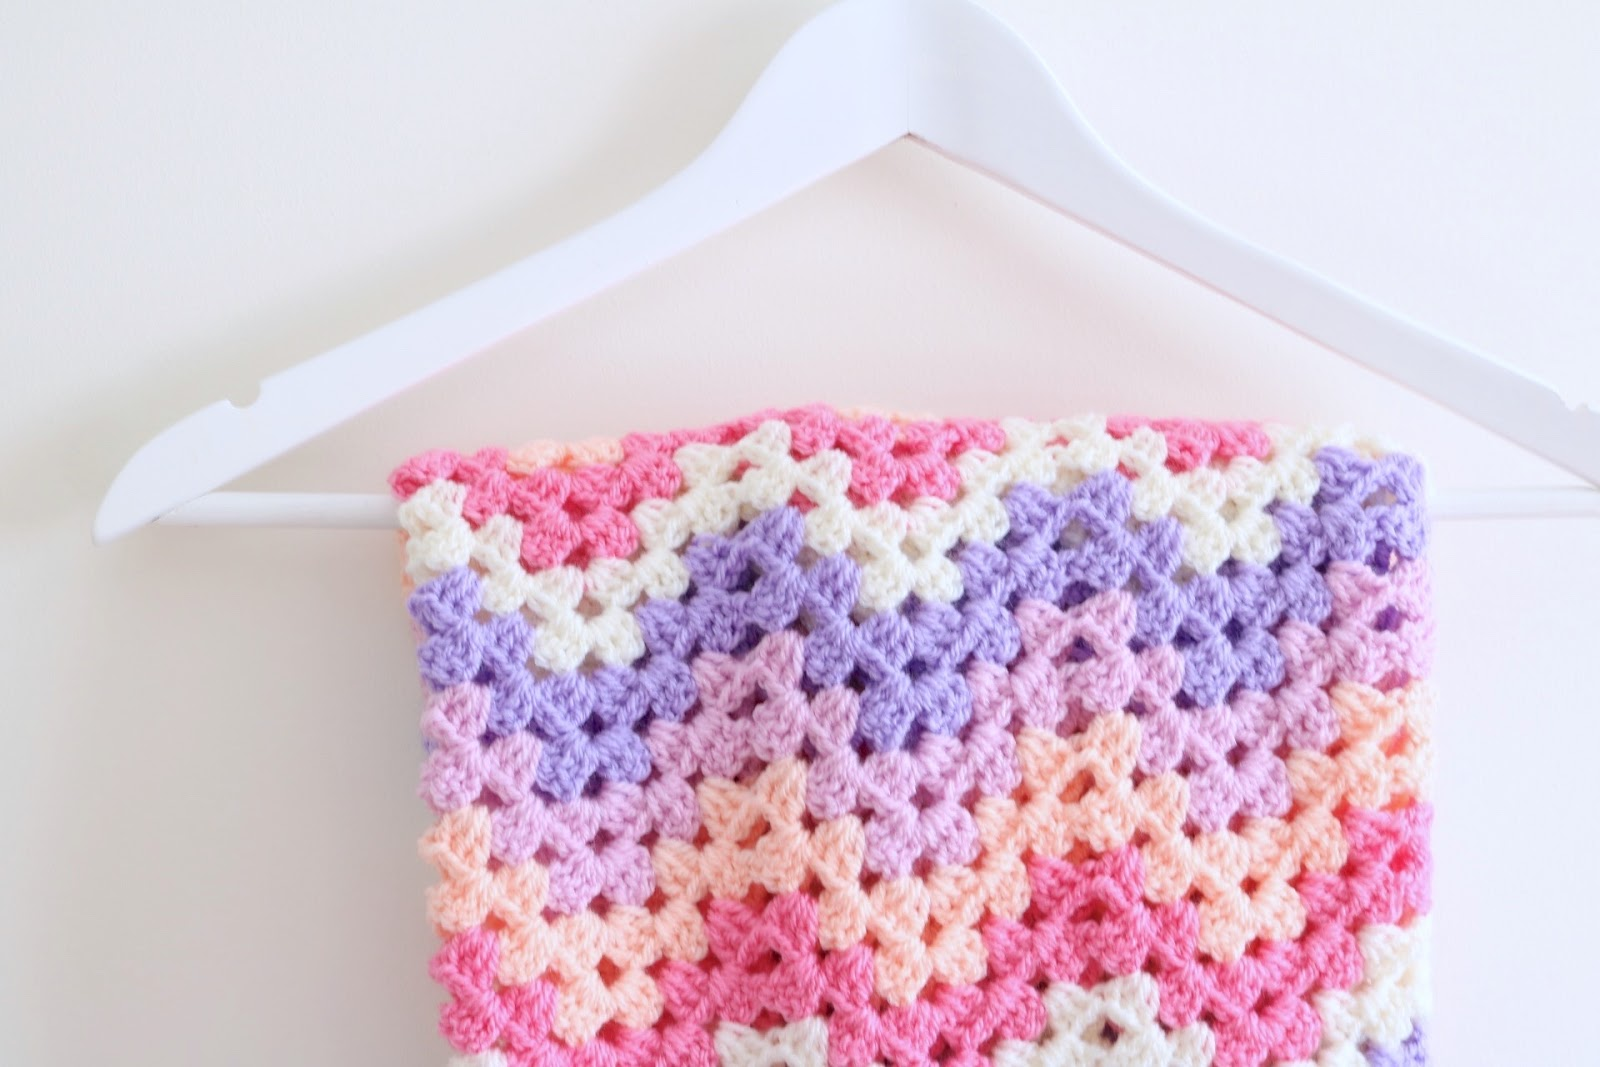 Crochet granny chevron blanket tutorial bella coco by sarah jayne granny ripplechevron tutorial ccuart Image collections